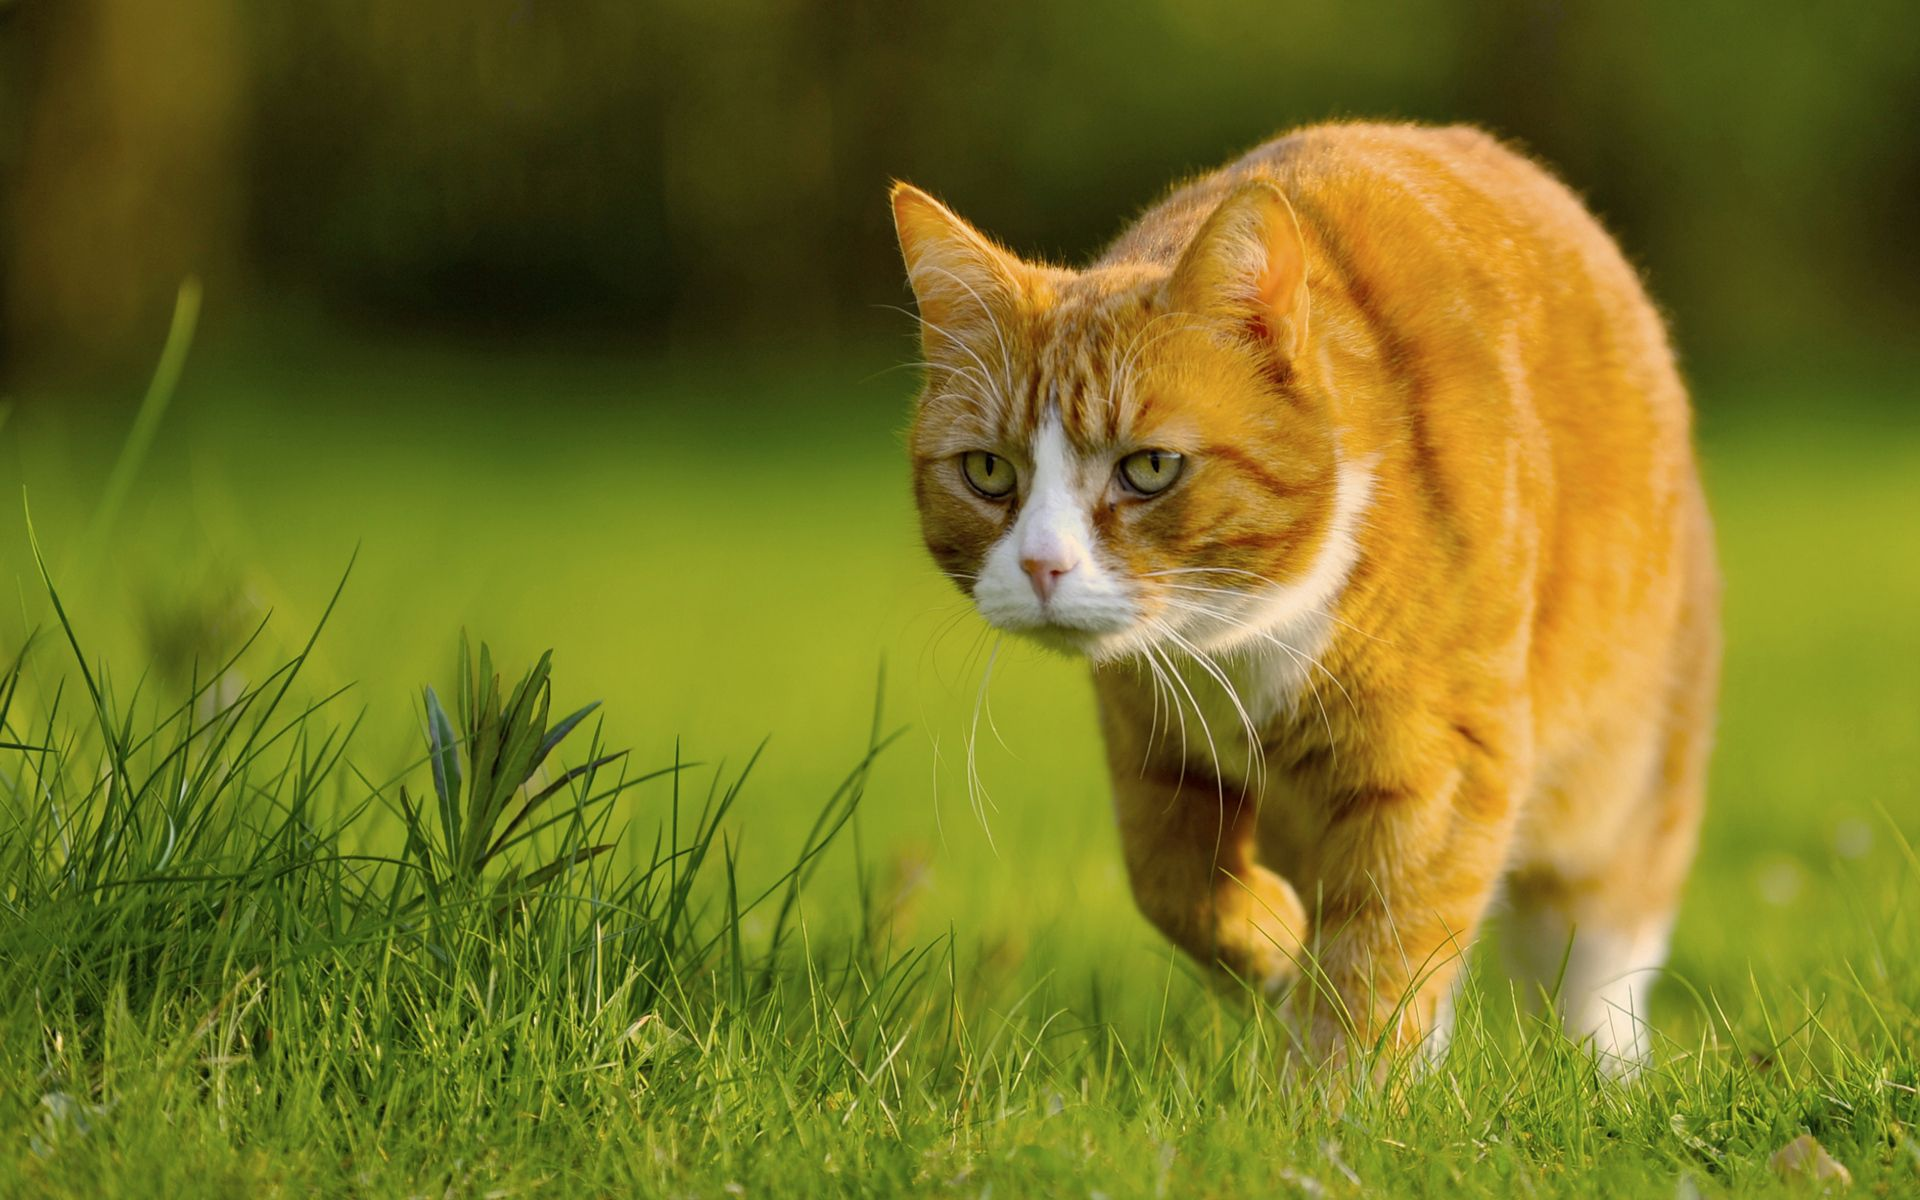 52546 download wallpaper Animals, Cat, Grass, Stroll, Hunting, Hunt screensavers and pictures for free